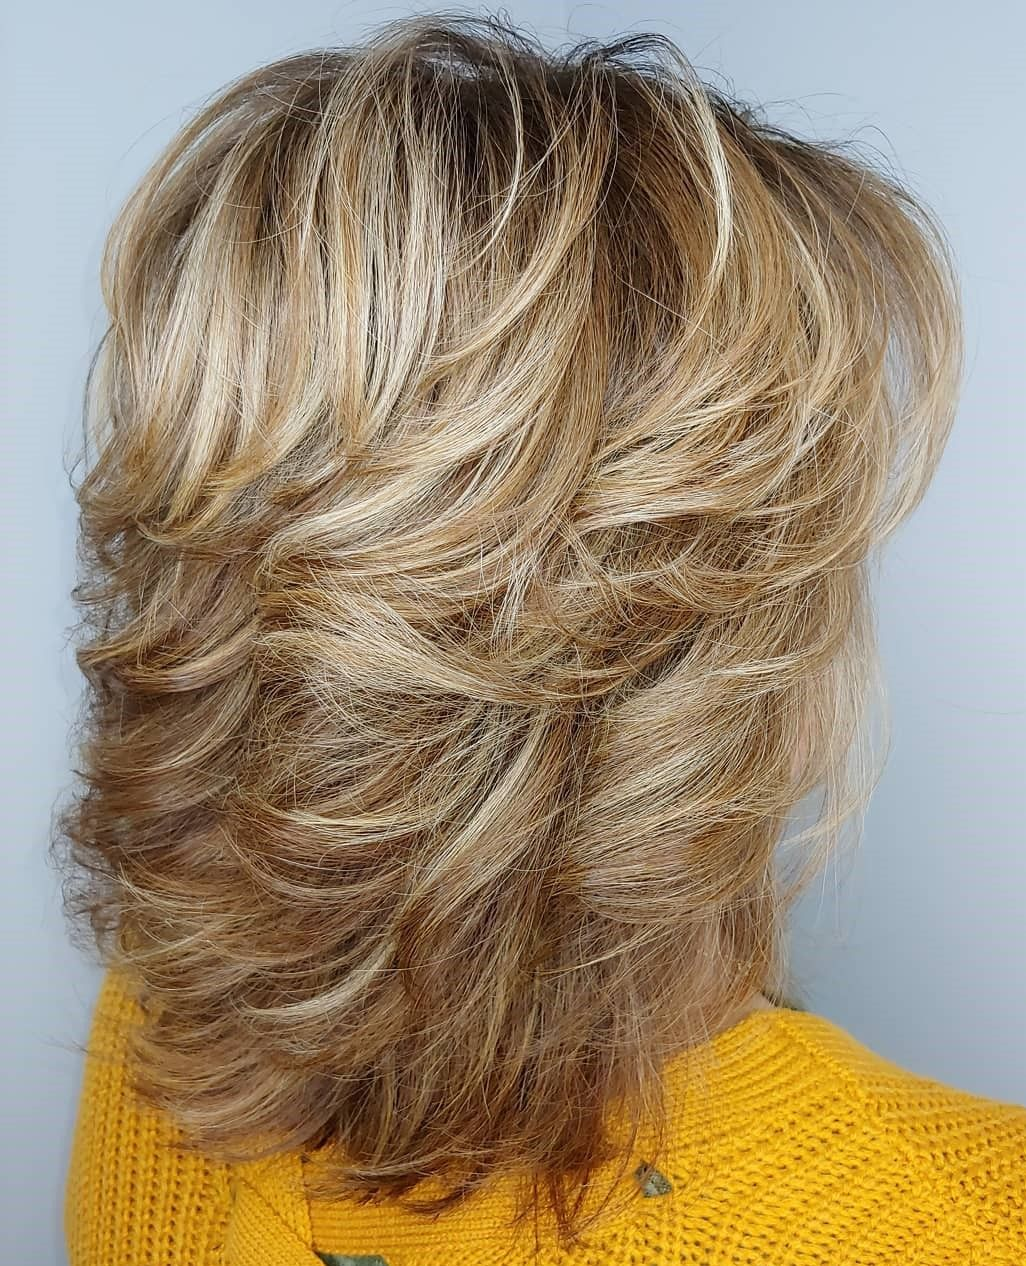 Graded Feathered Shag For Thick Hair In 2020 Medium Shag Haircuts Medium Hair Styles Thick Hair Styles